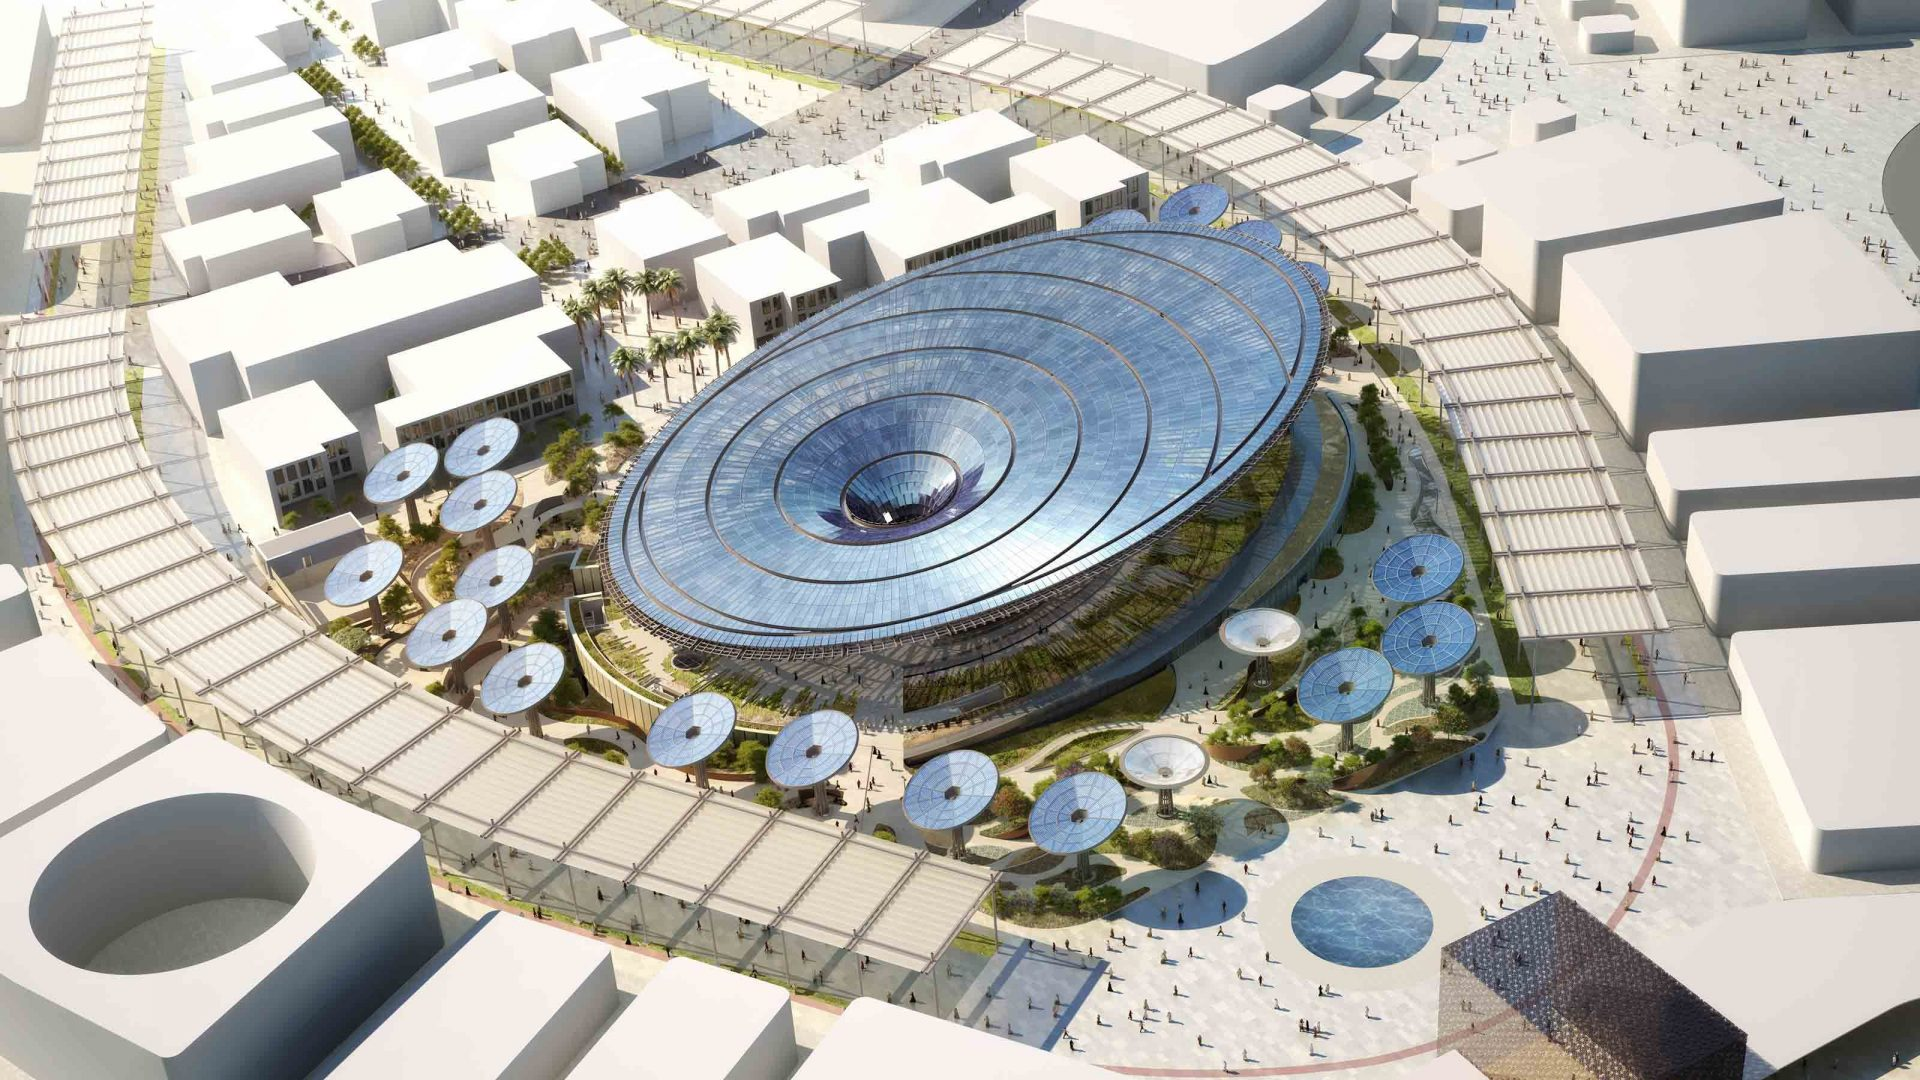 Discover the Sustainability District that will arrive at Expo Dubai 2020